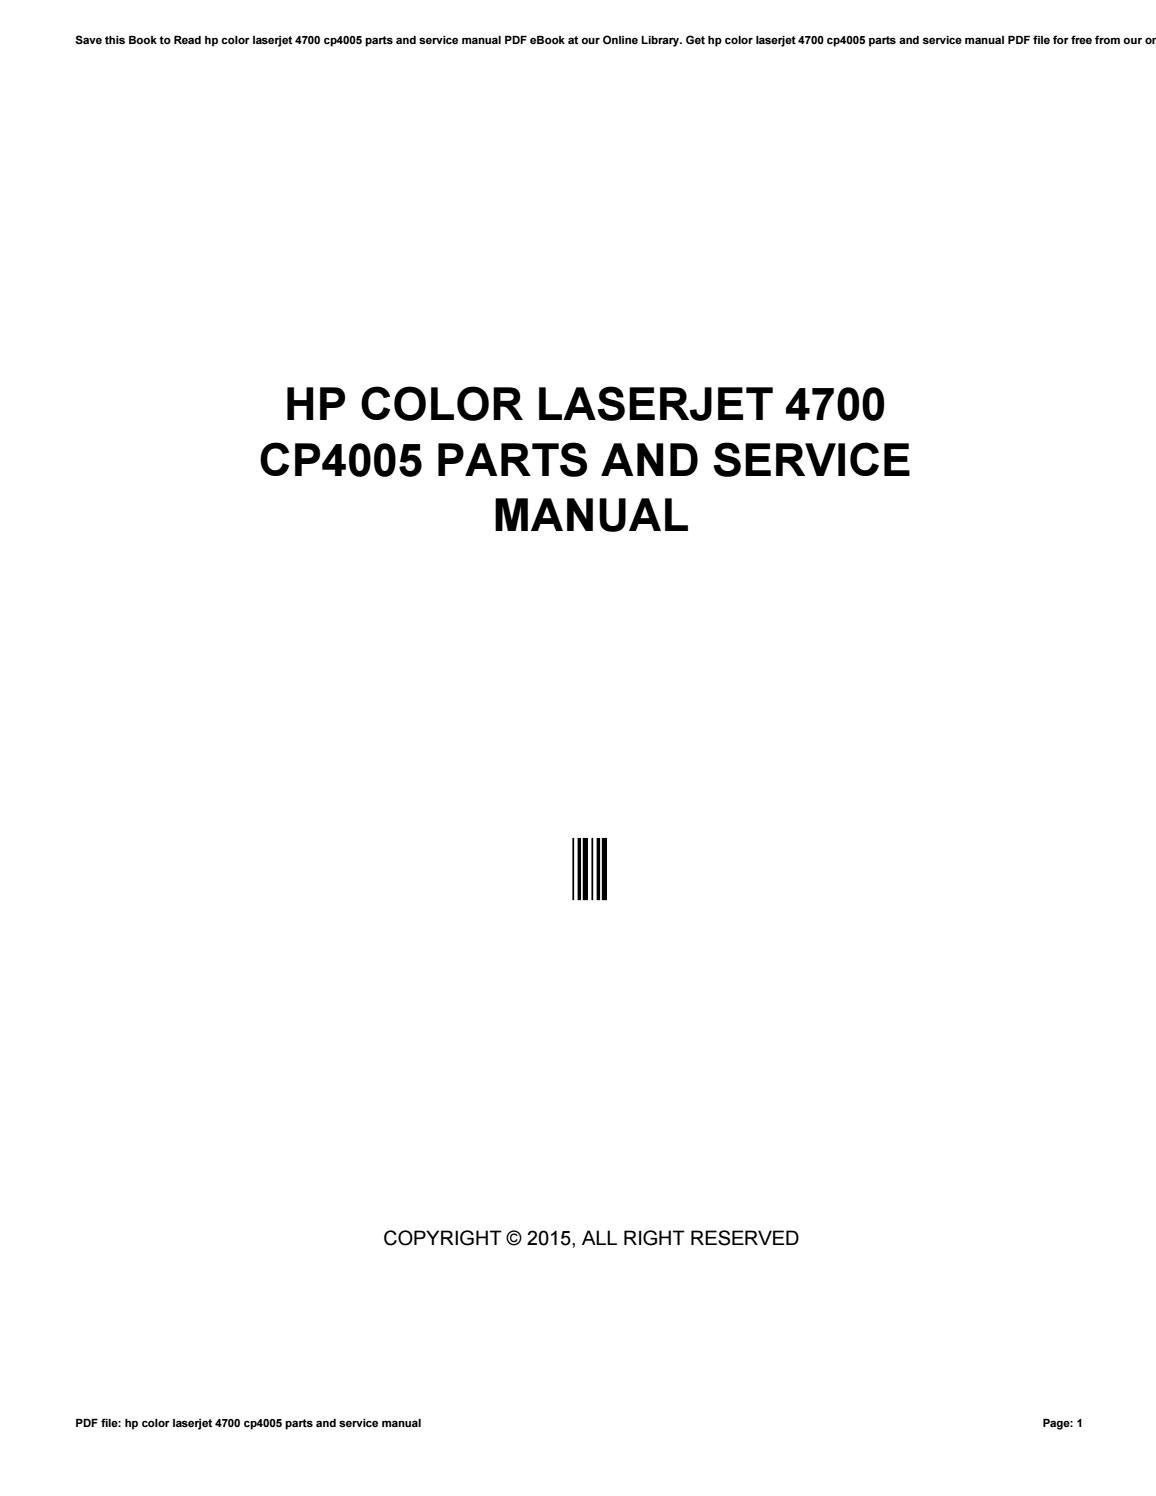 Hp color laserjet 4700 cp4005 parts and service manual by fares29mikon -  issuu